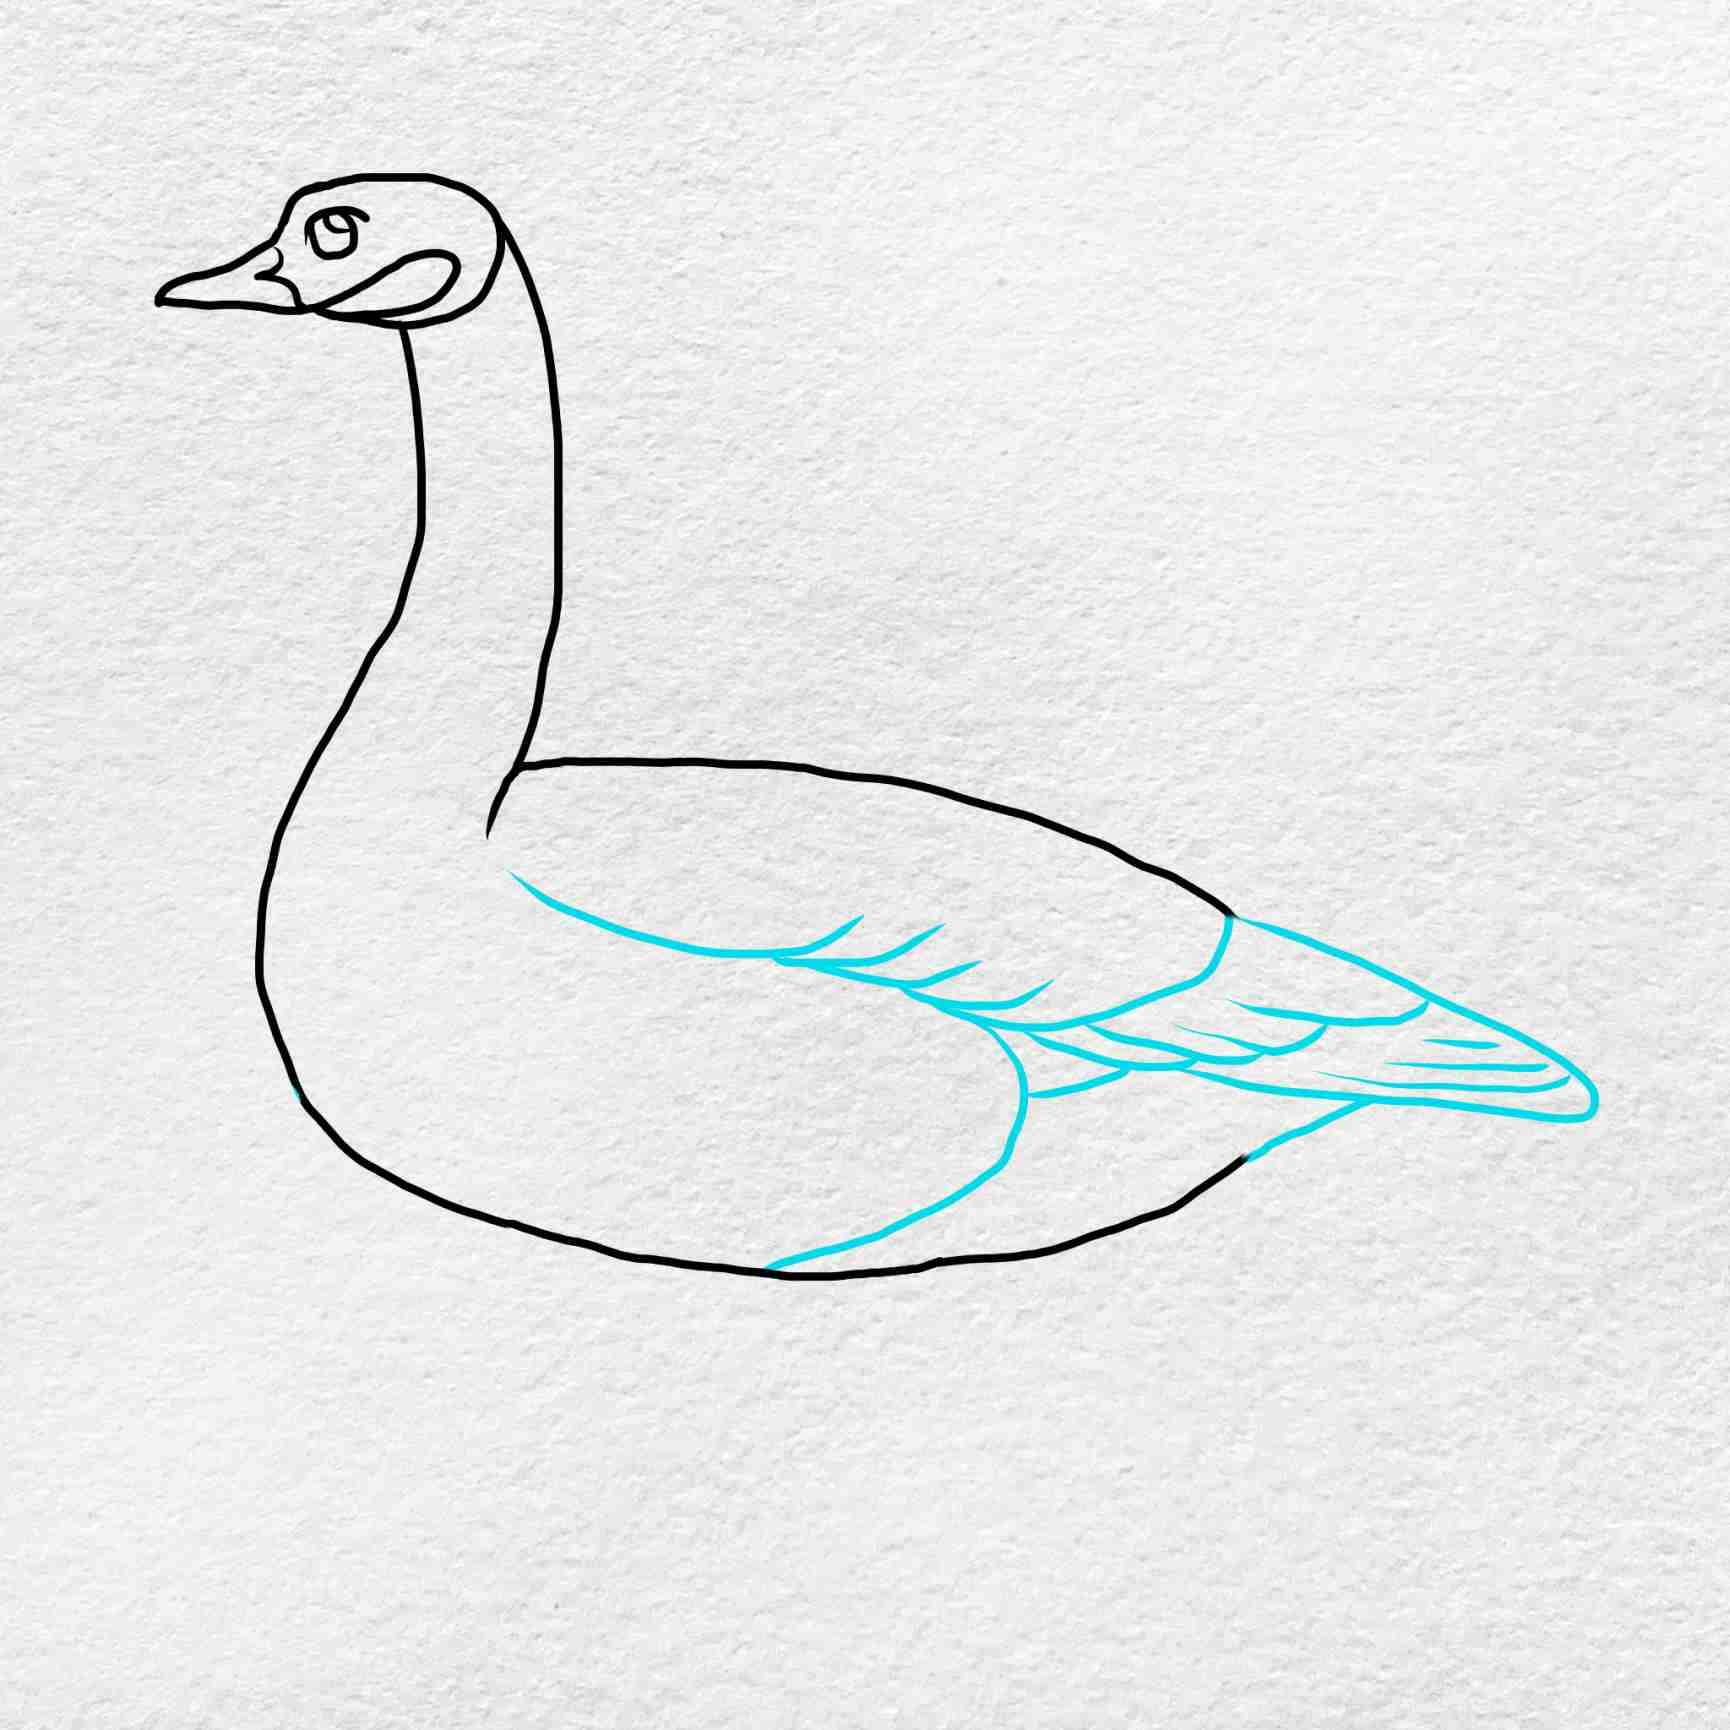 Canada Goose Drawing: Step 4